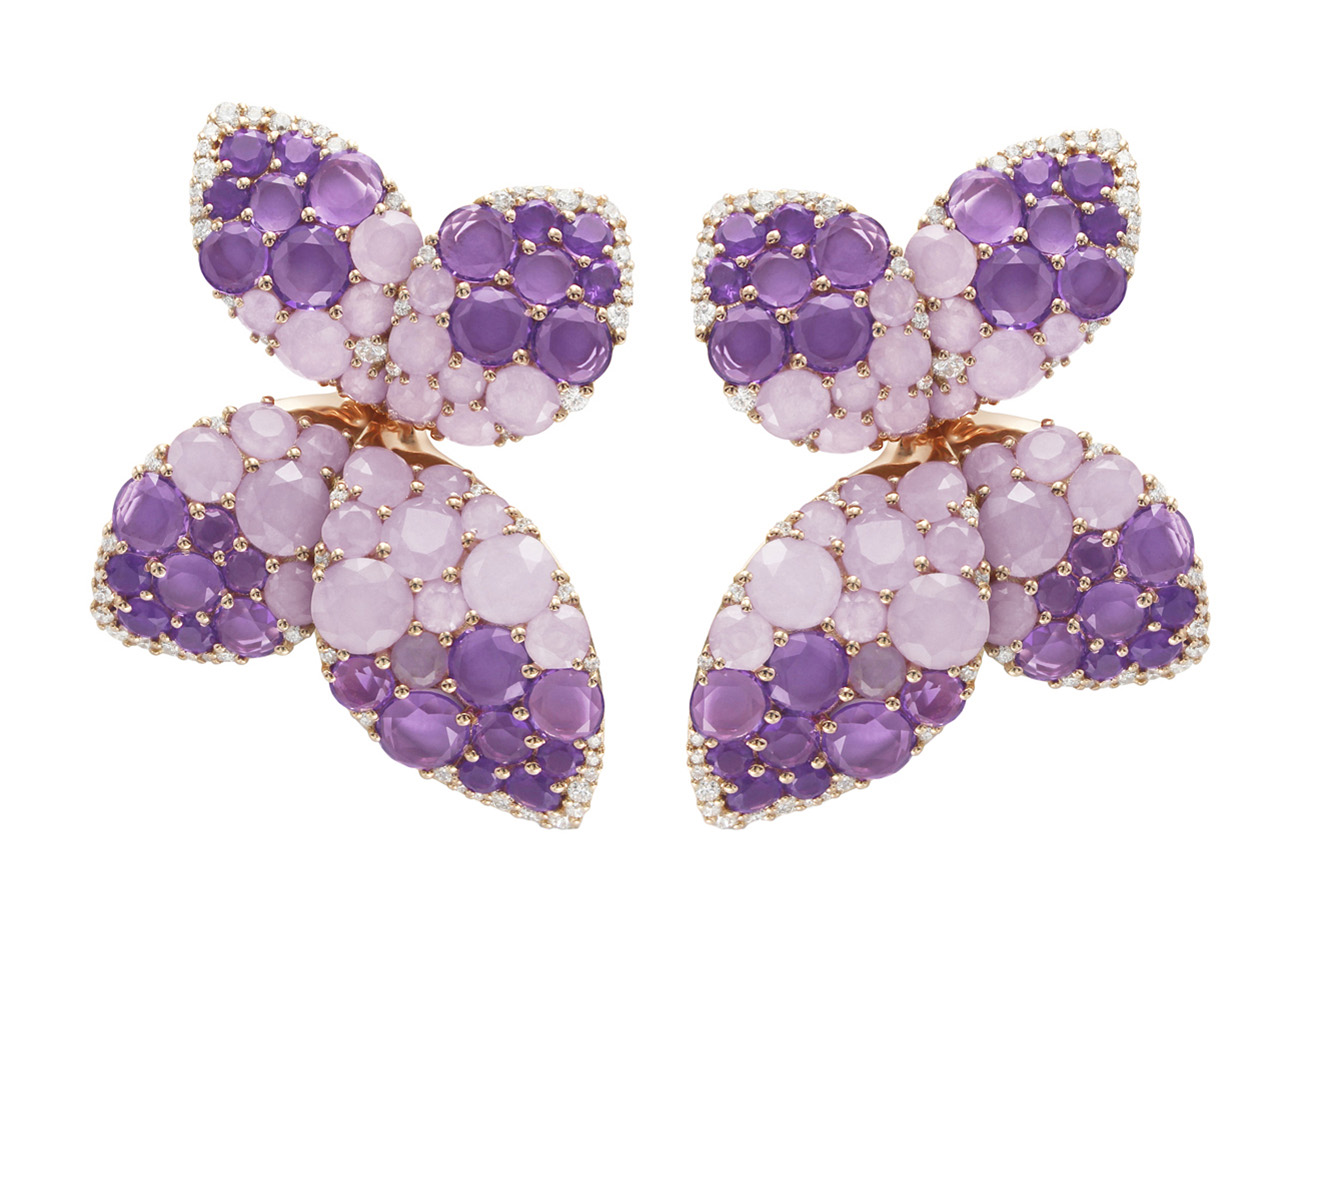 GIARDINI SEGRETI EARRINGS WITH AMETHYST, VIOLET JADE AND DIAMONDS